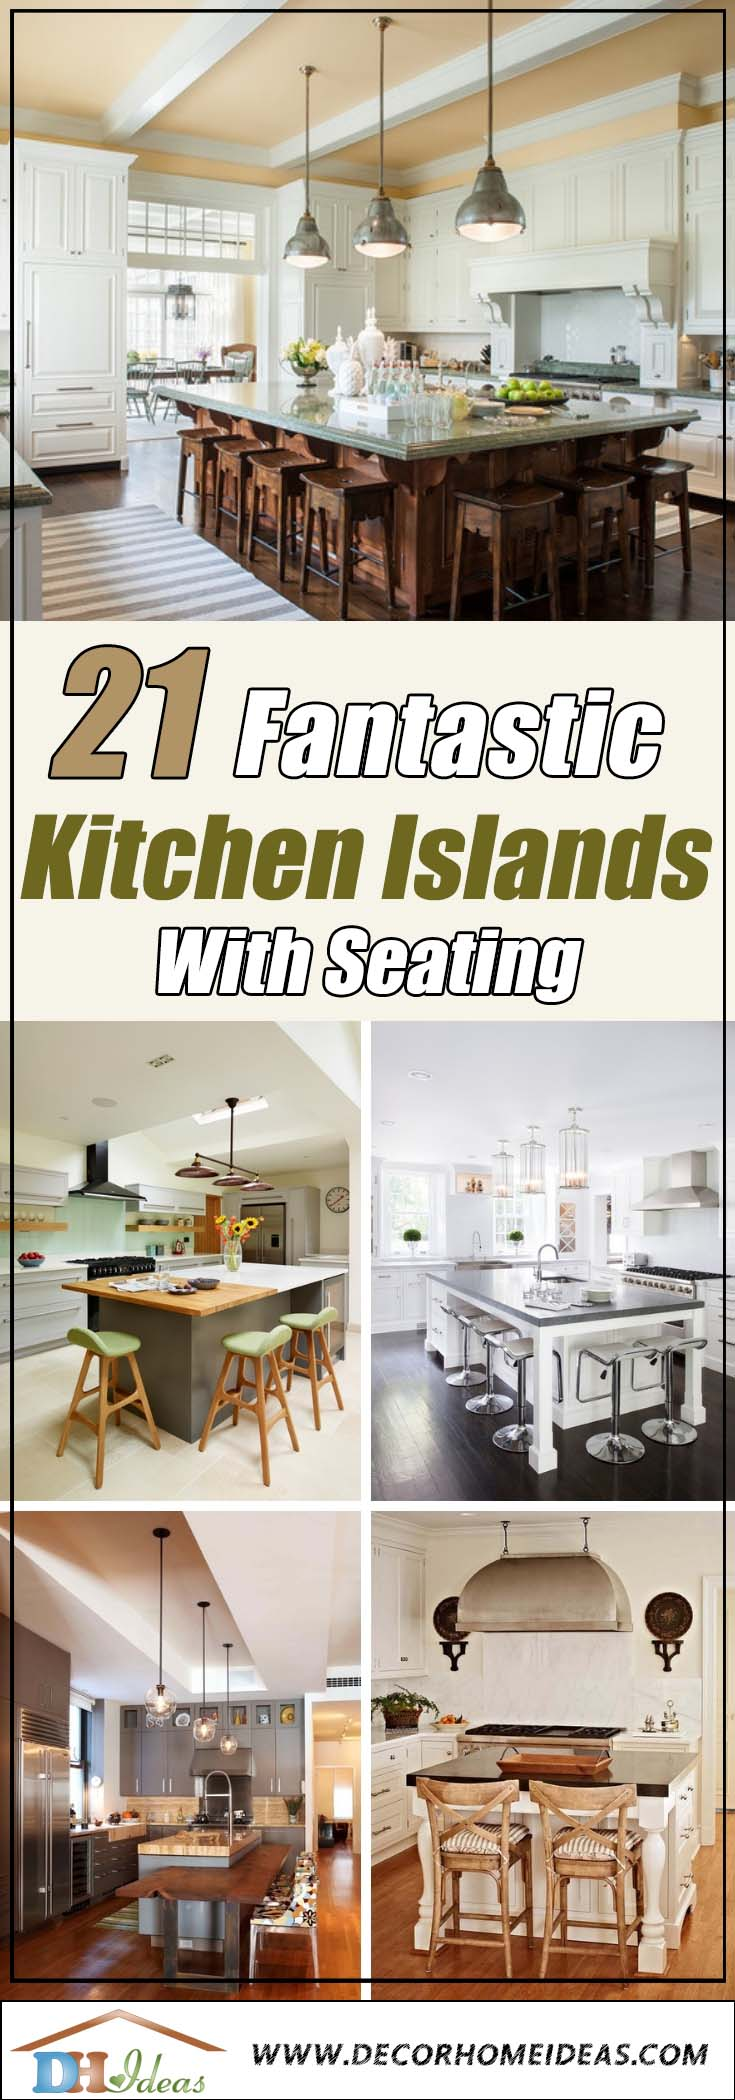 21 Fantastic Kitchen Islands With Seating Decor Home Ideas